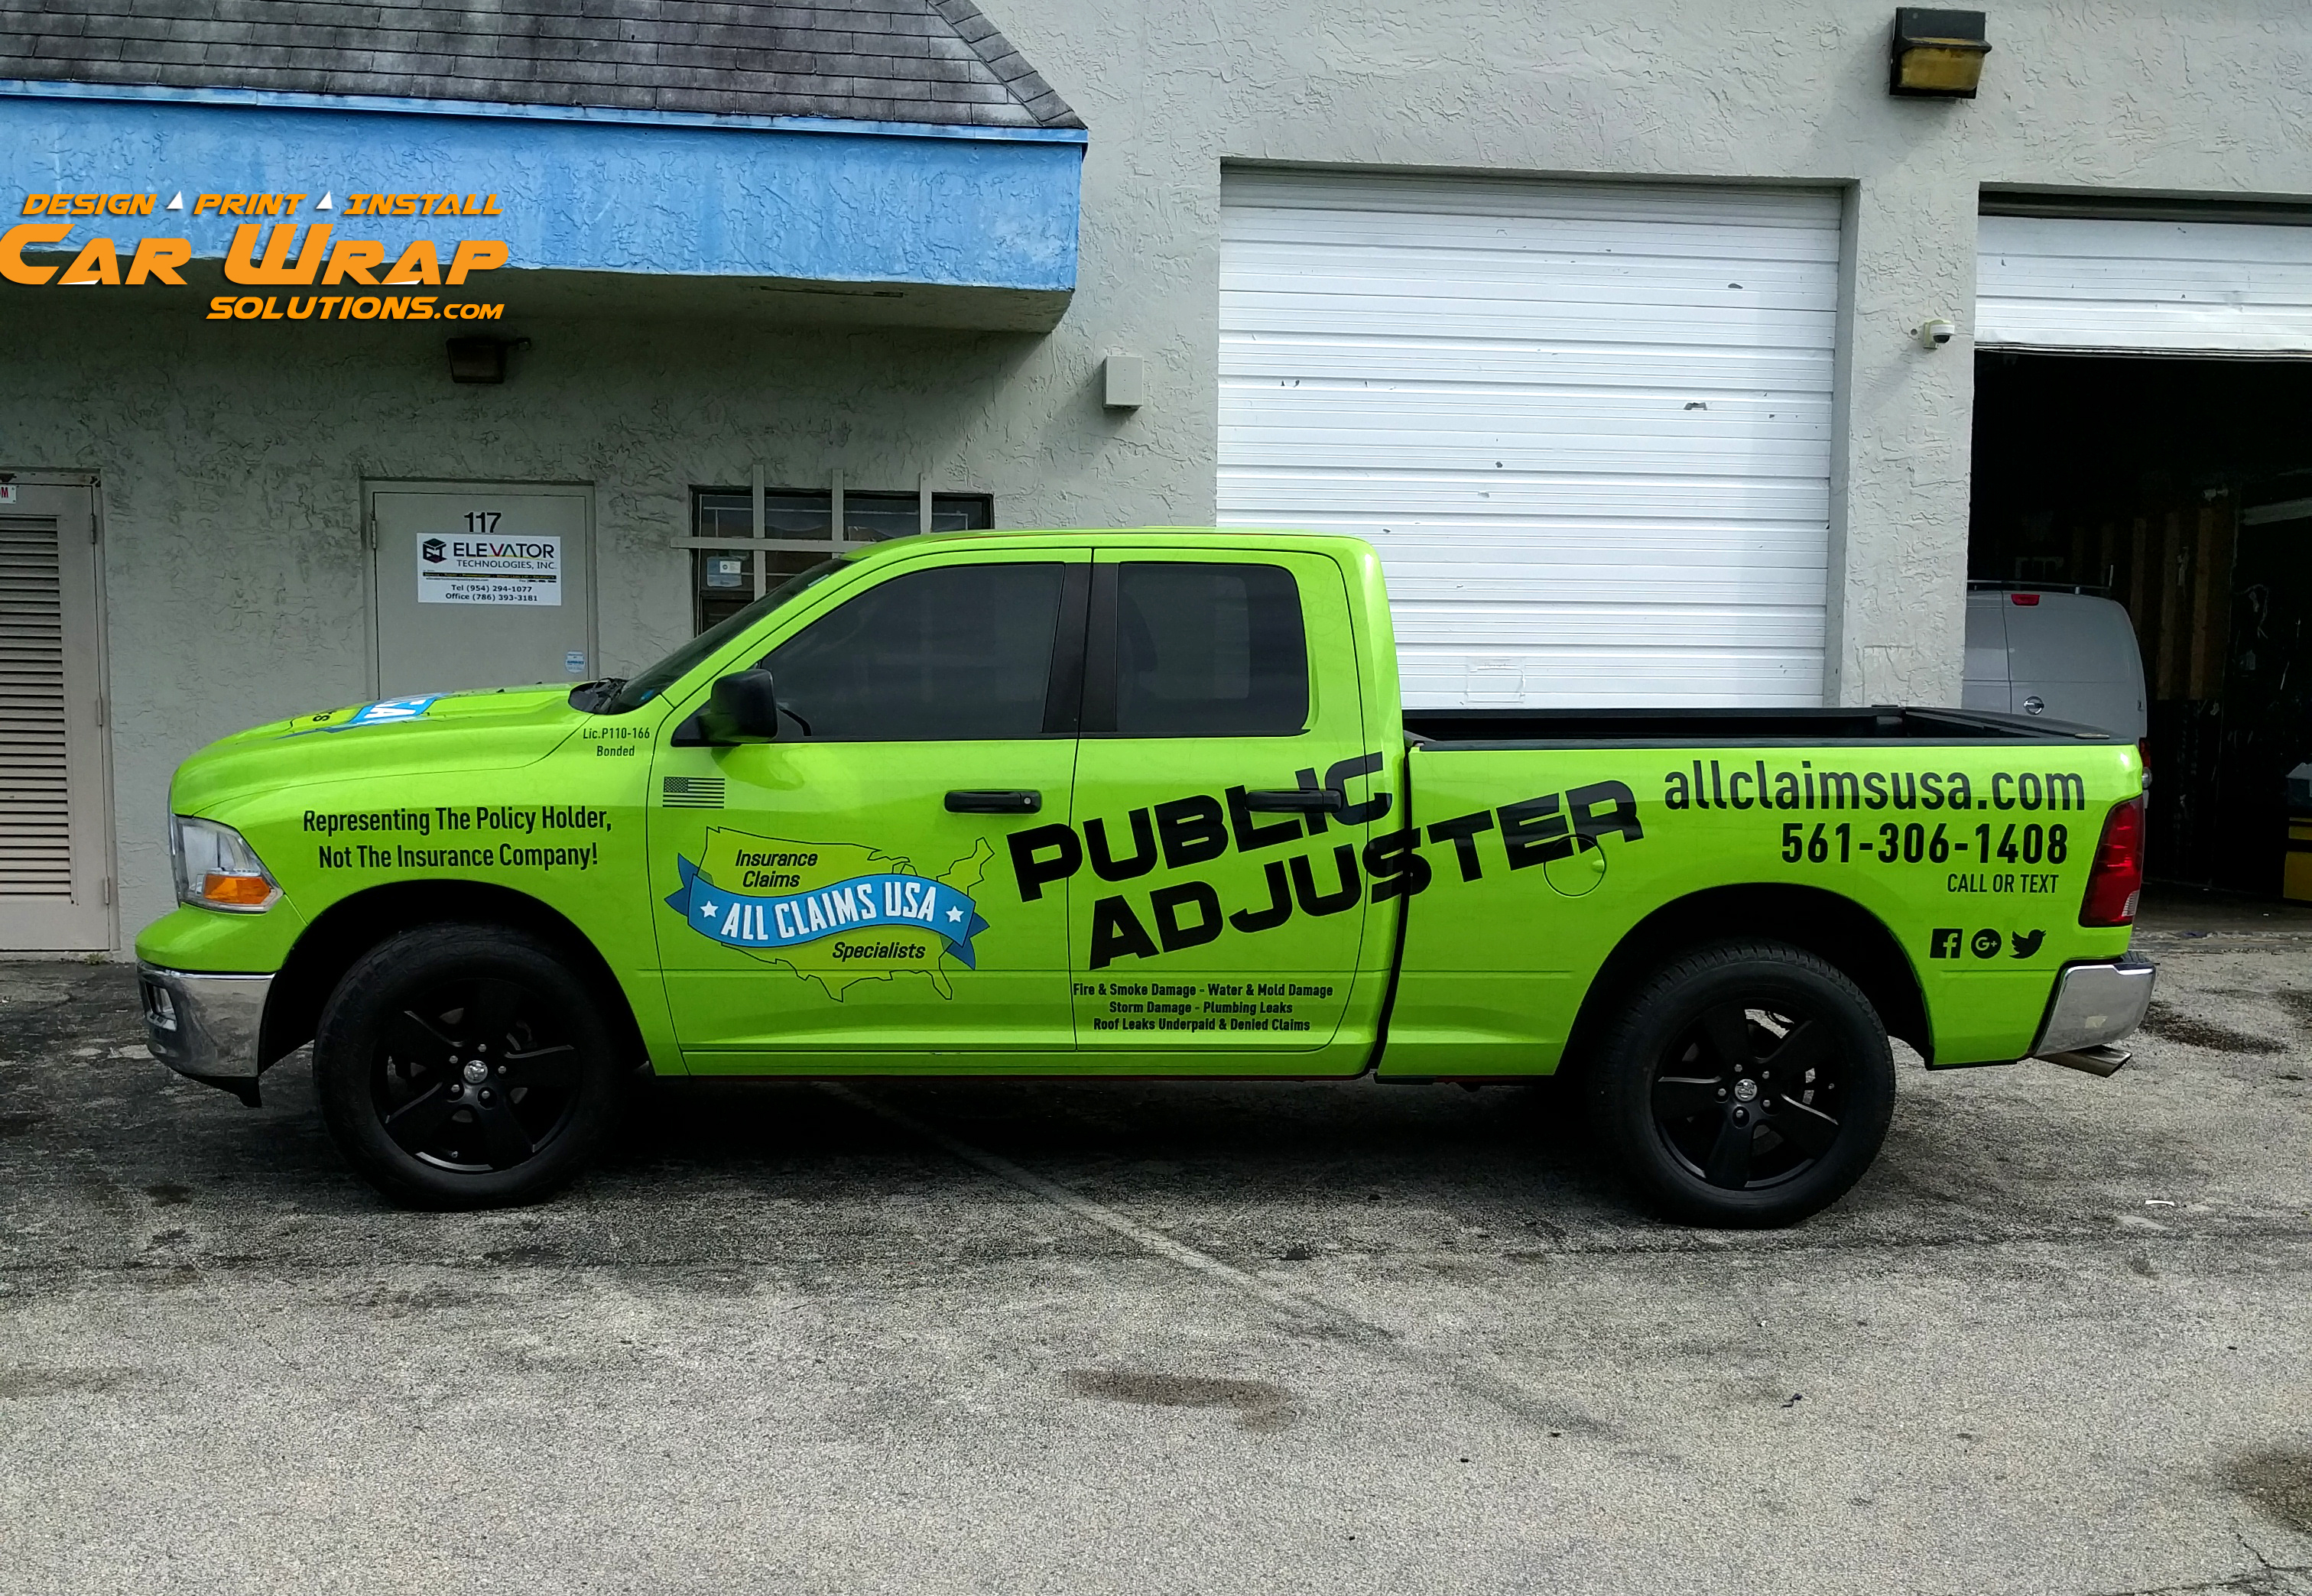 Ram Truck Wrap Advertising For All Claims Usa By Car Wrap